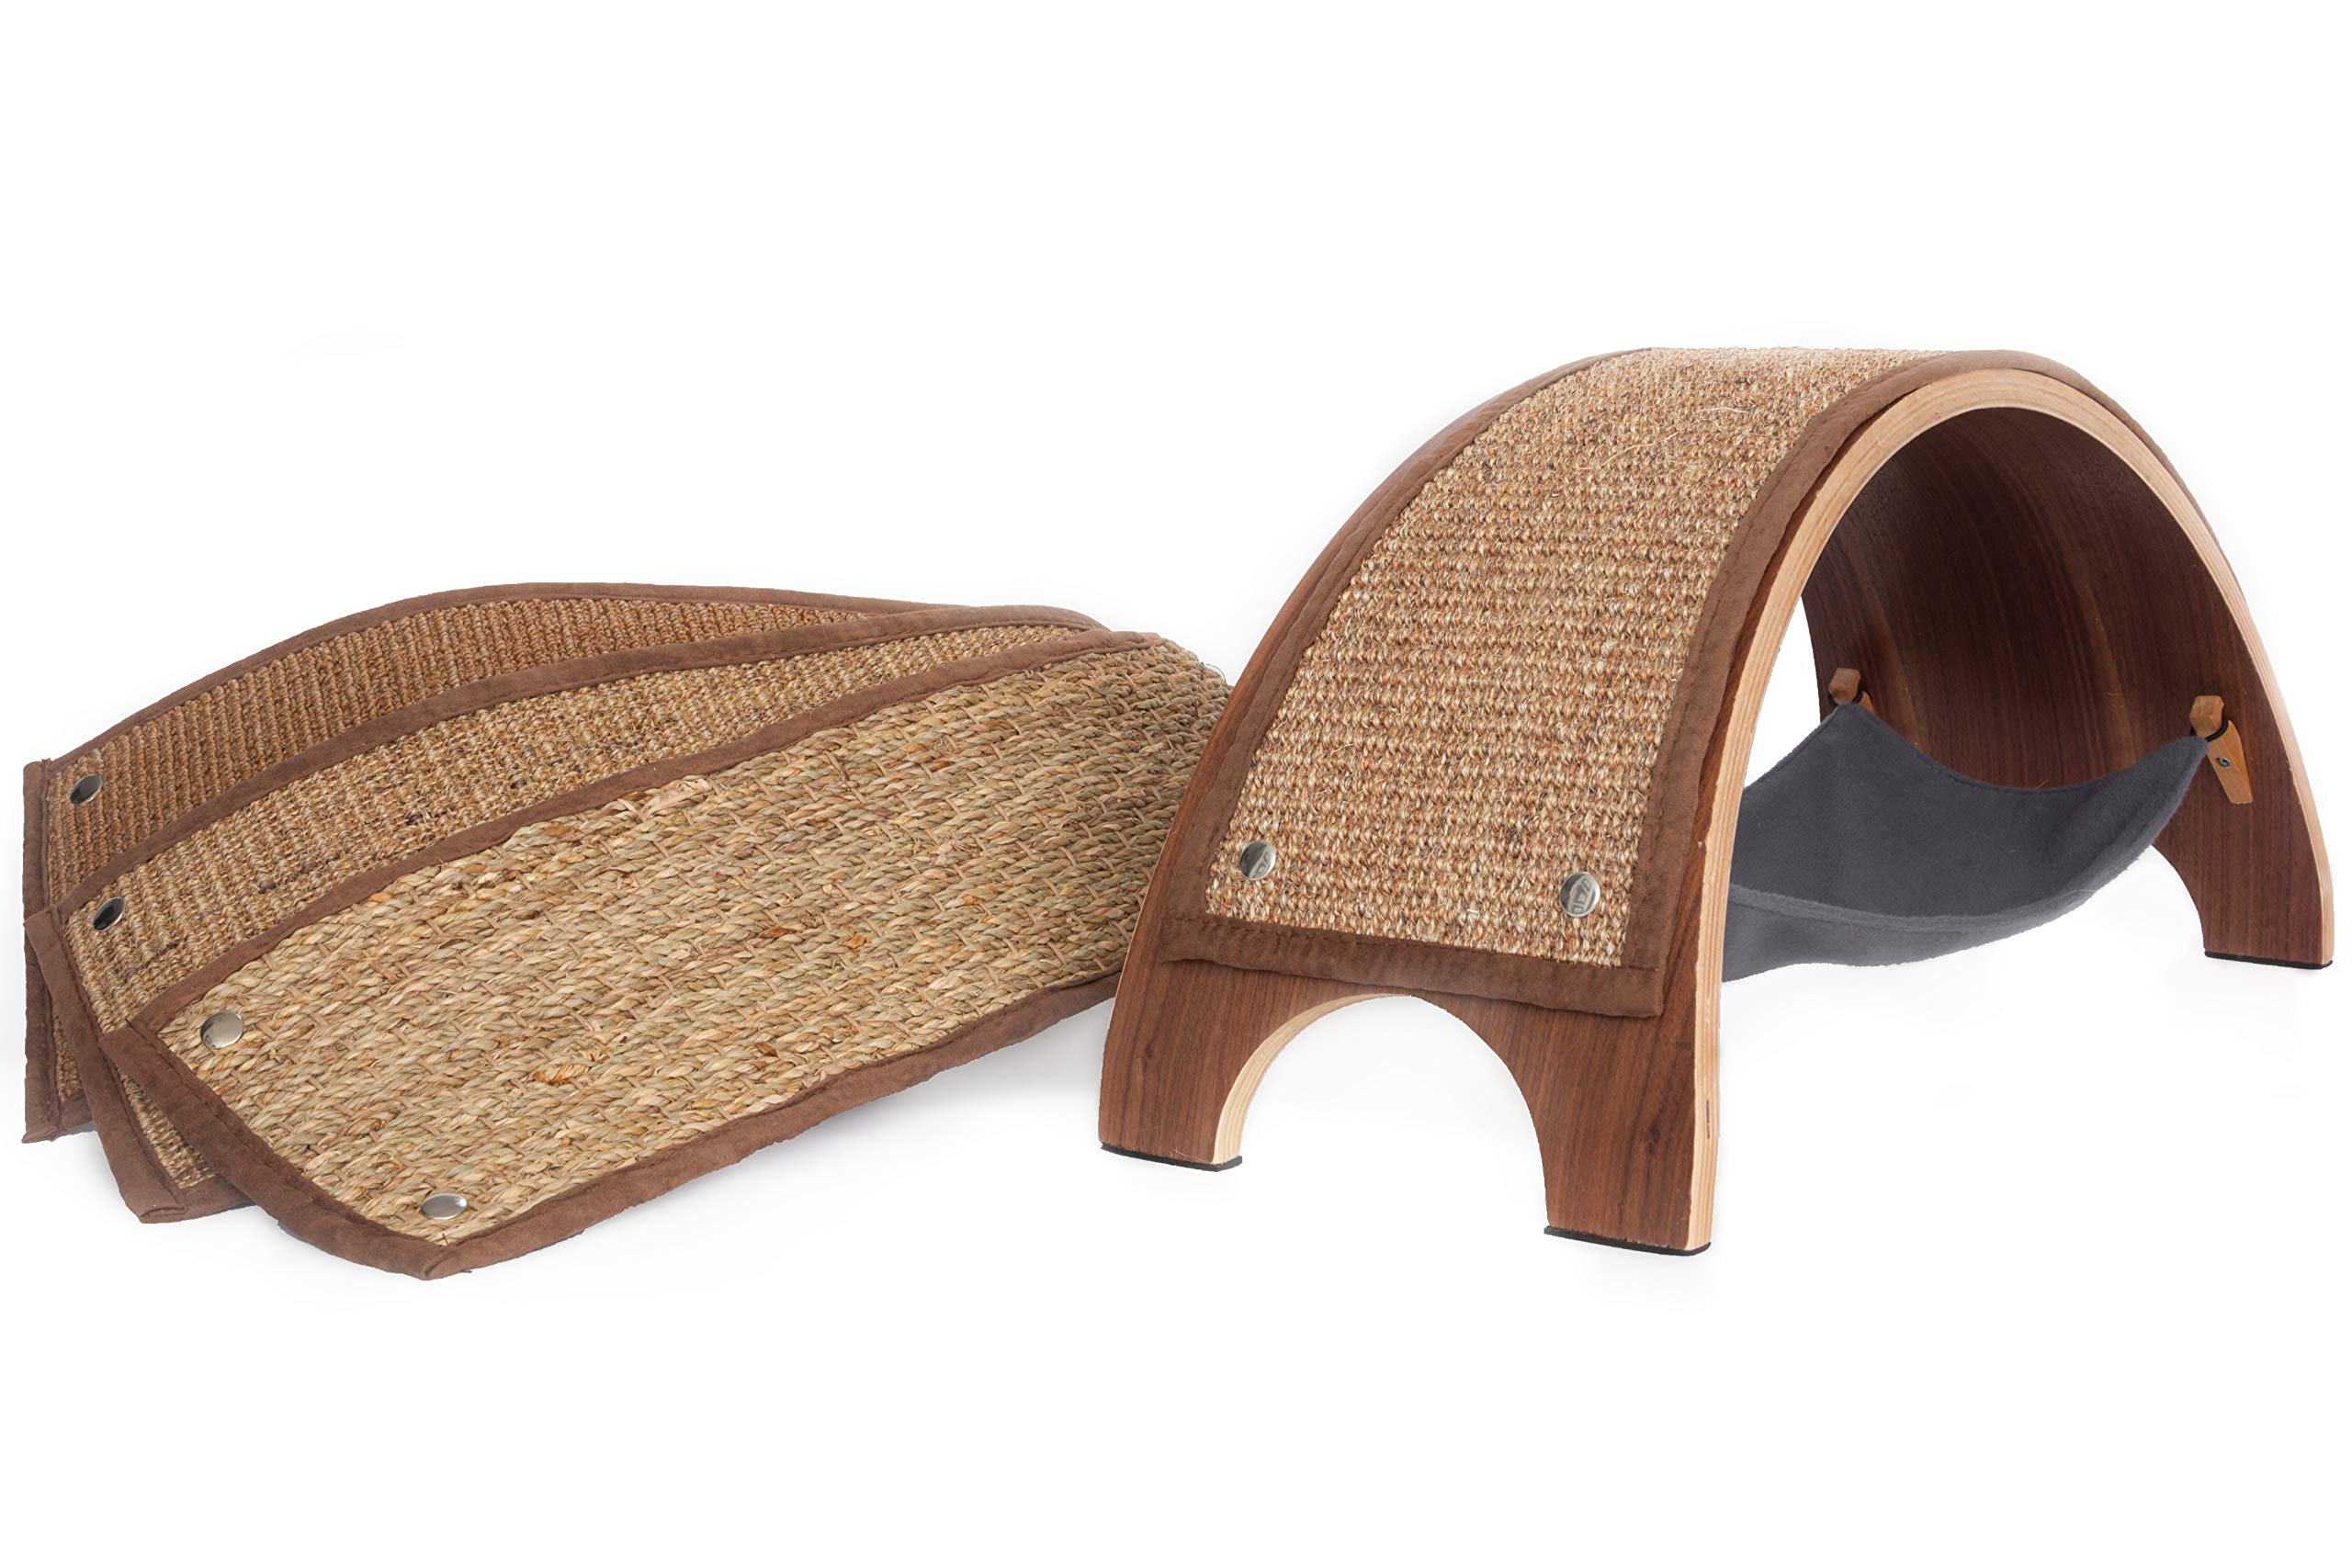 Feline Innovations The QuickSnap Replaceable Cat Scratcher + Replacements Set (Bundle) by Feline Innovations